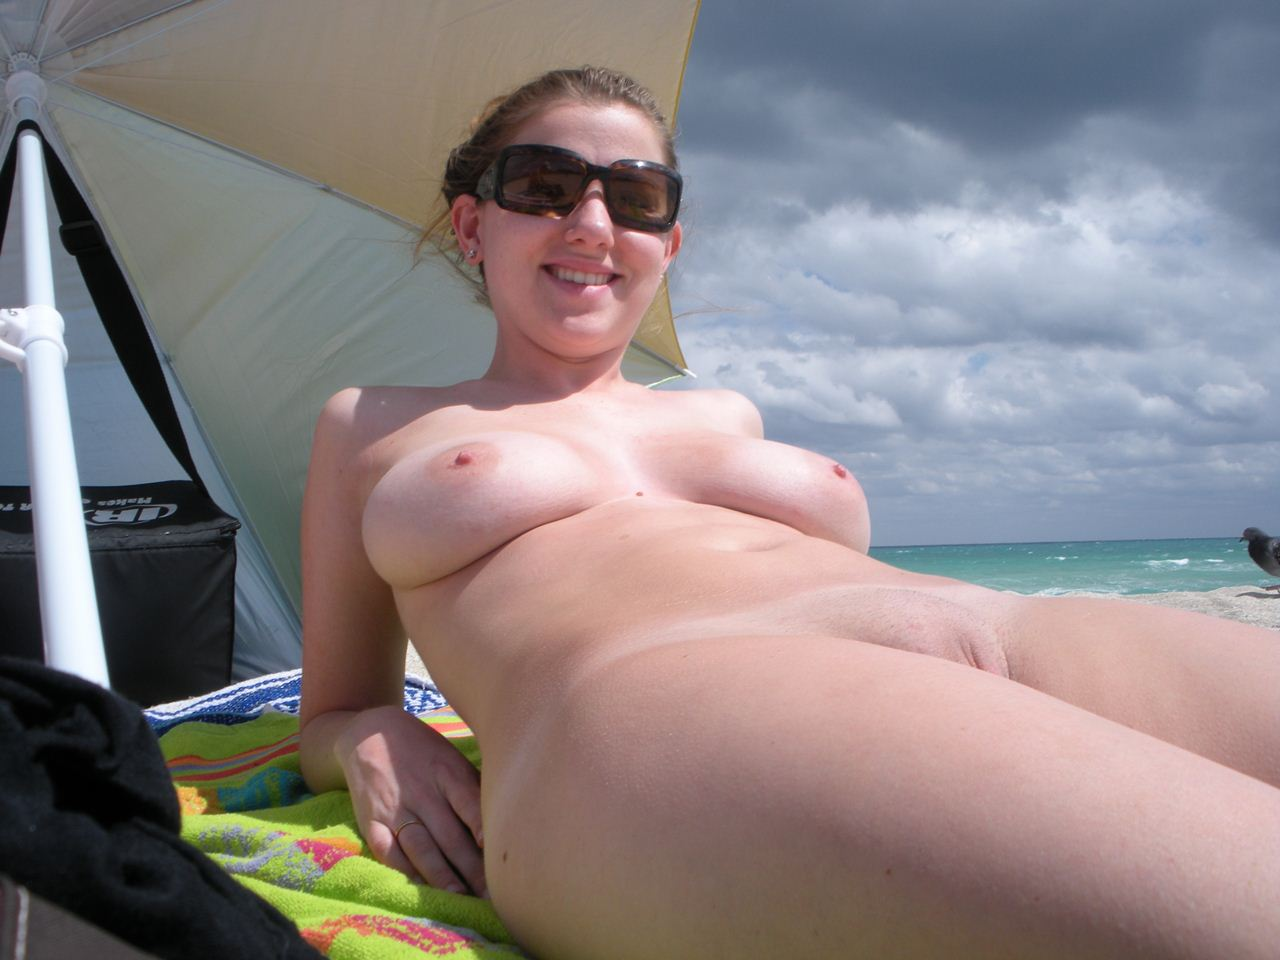 nudist woman Nudist Women BONUS Photo of the Day 03/09/11